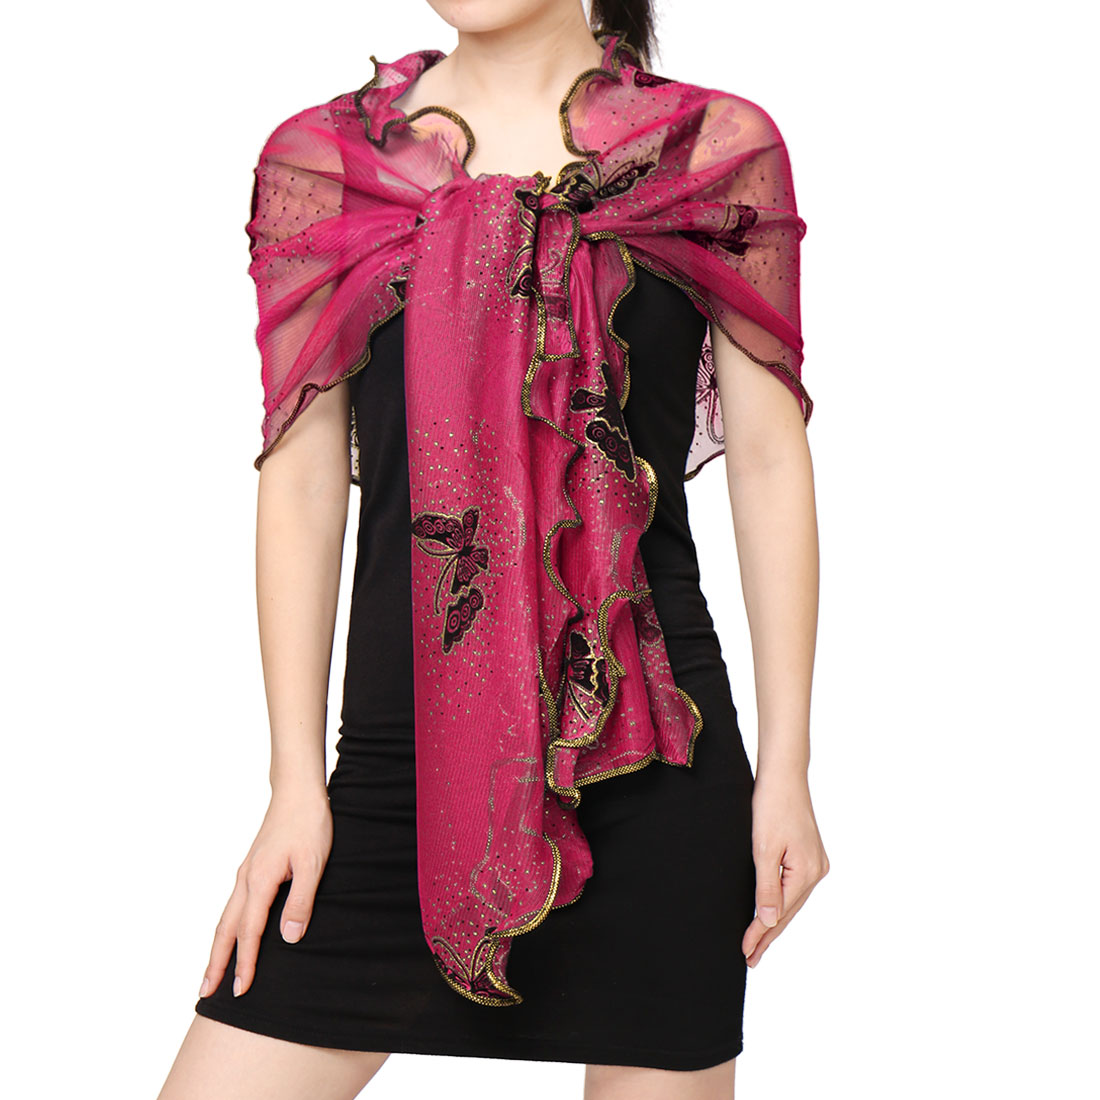 Unique Bargains Women's Ruffled Trim Shiny Butterfly Semi Sheer Rectangular Scarf Pink